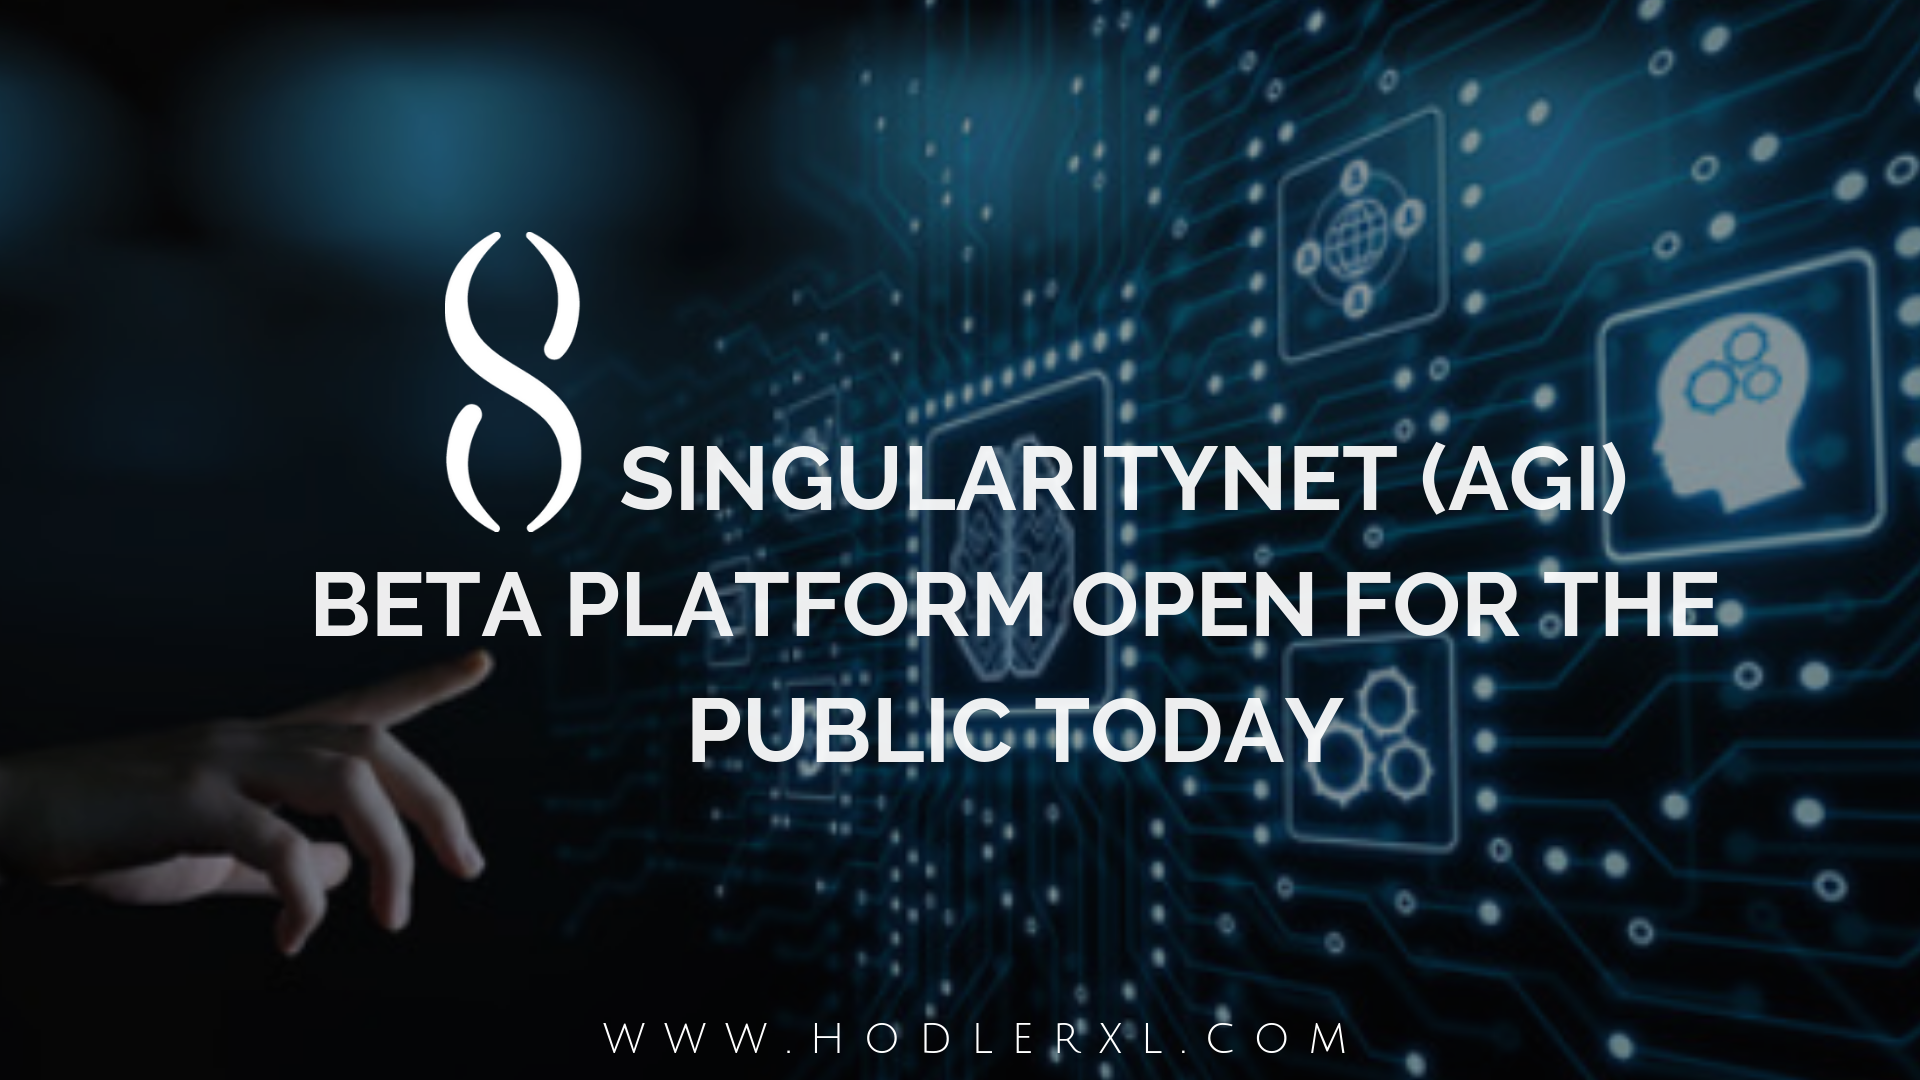 SingularityNET Beta Platform Open Public Today